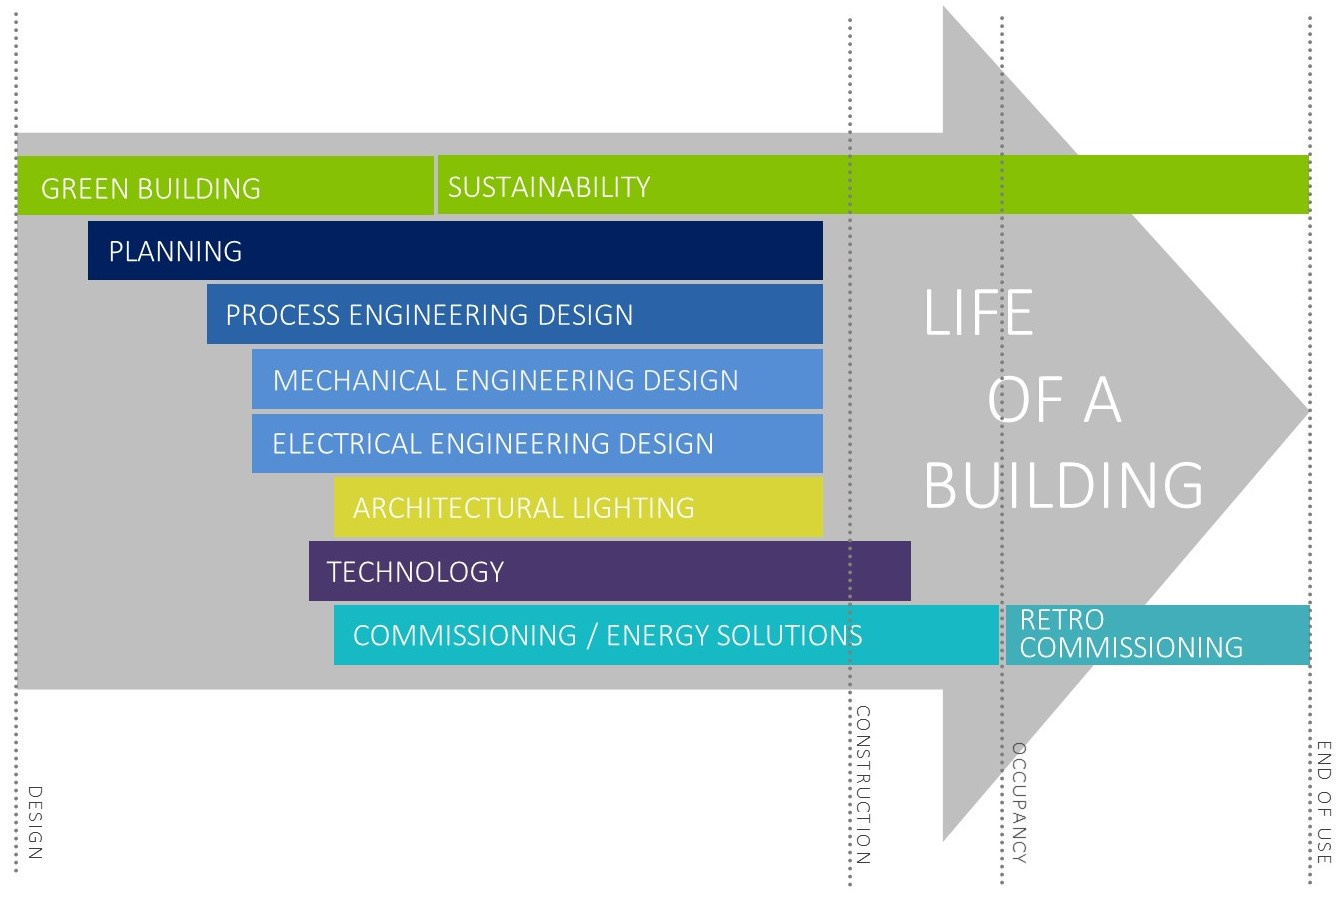 Life of a building graphic